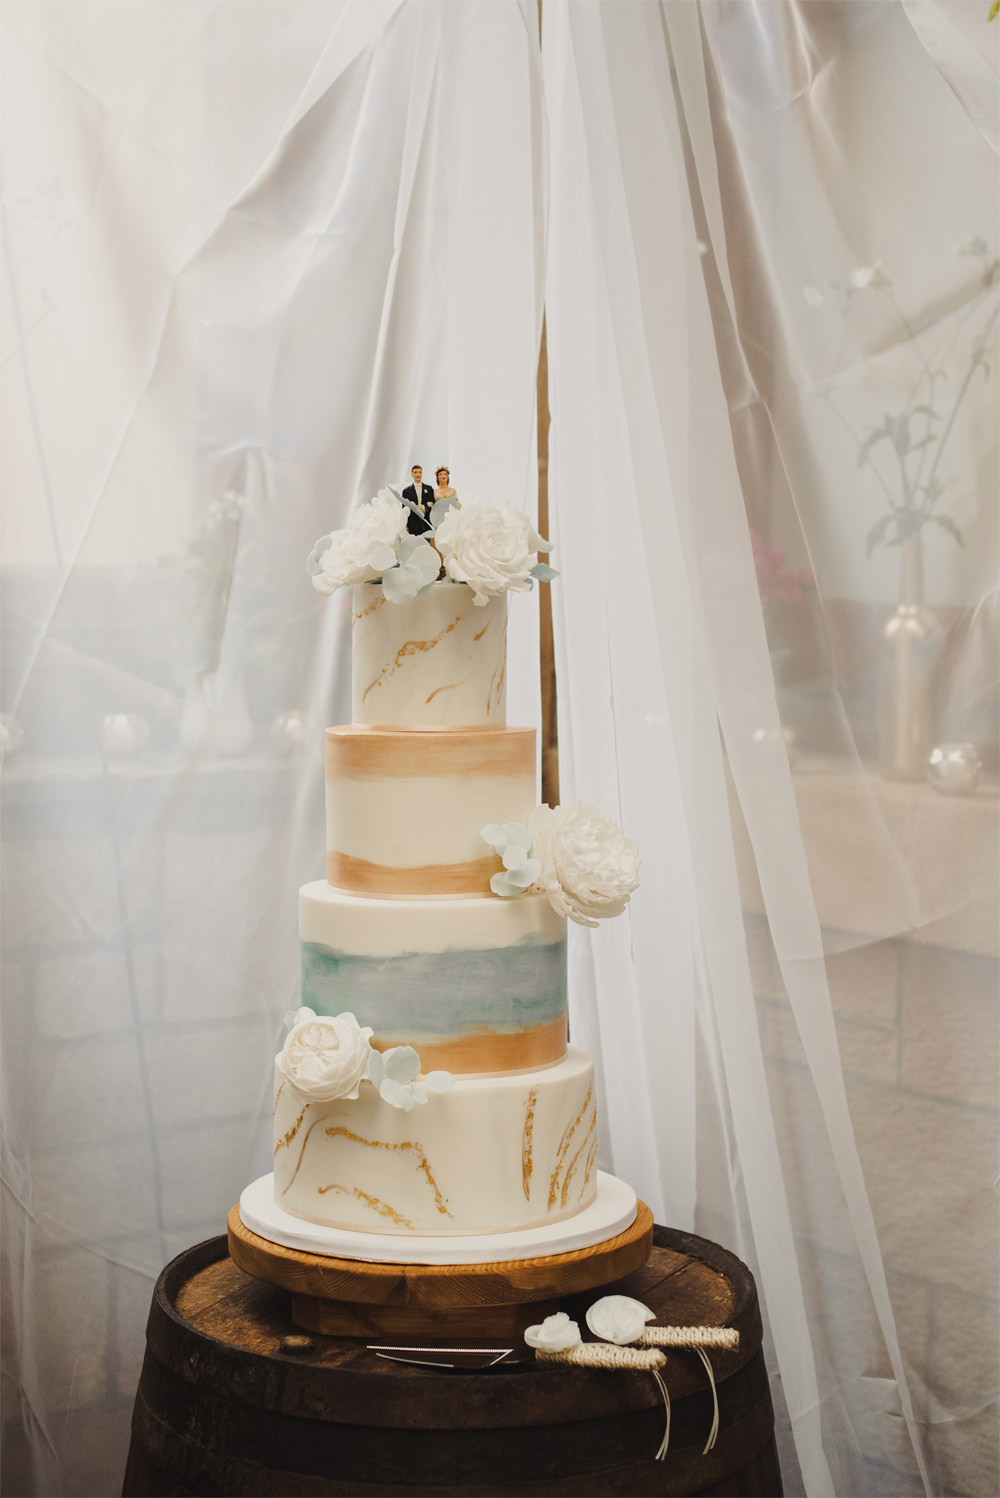 Tall Cake Gold Flowers Cambo Estate Wedding Anna Urban Wedding Photography